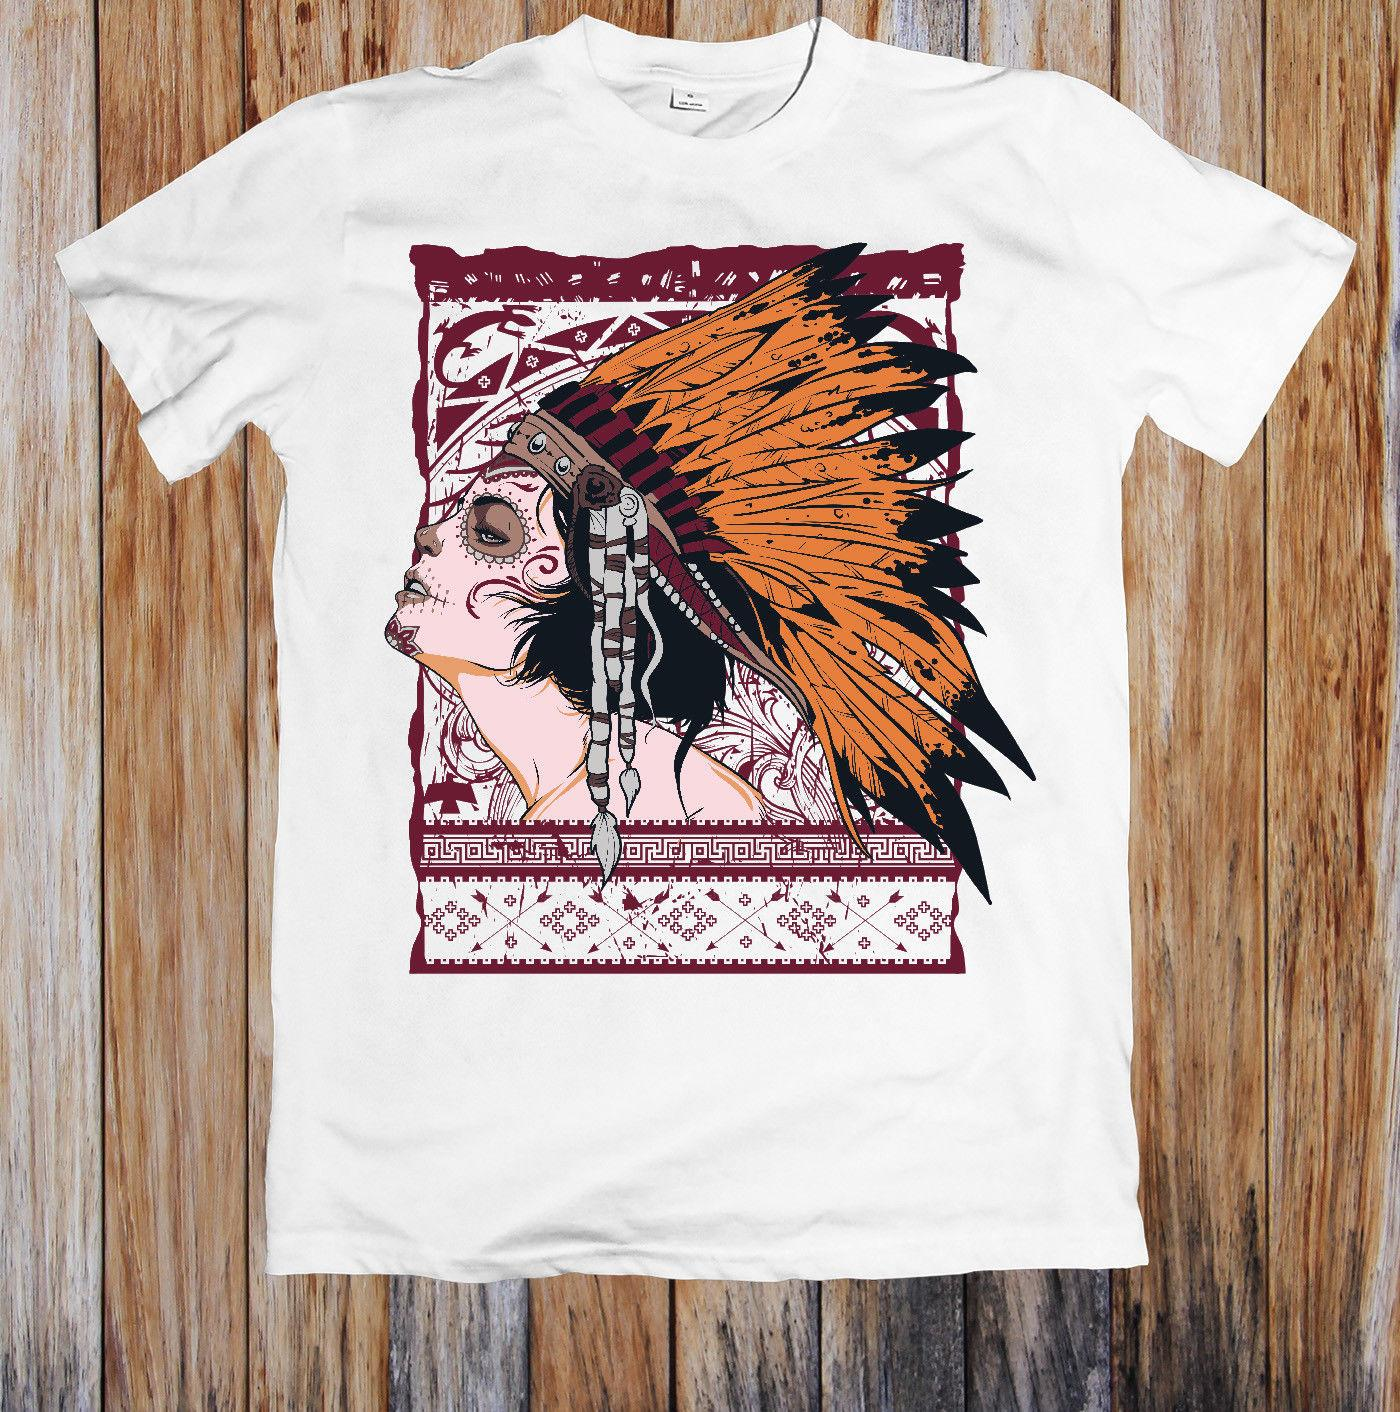 Indian Girl Unisex T Shirt 100 Cotton Casual Funny Shirts Official T Shirt New Hipster O Neck Casual New Brand Clothing Tee